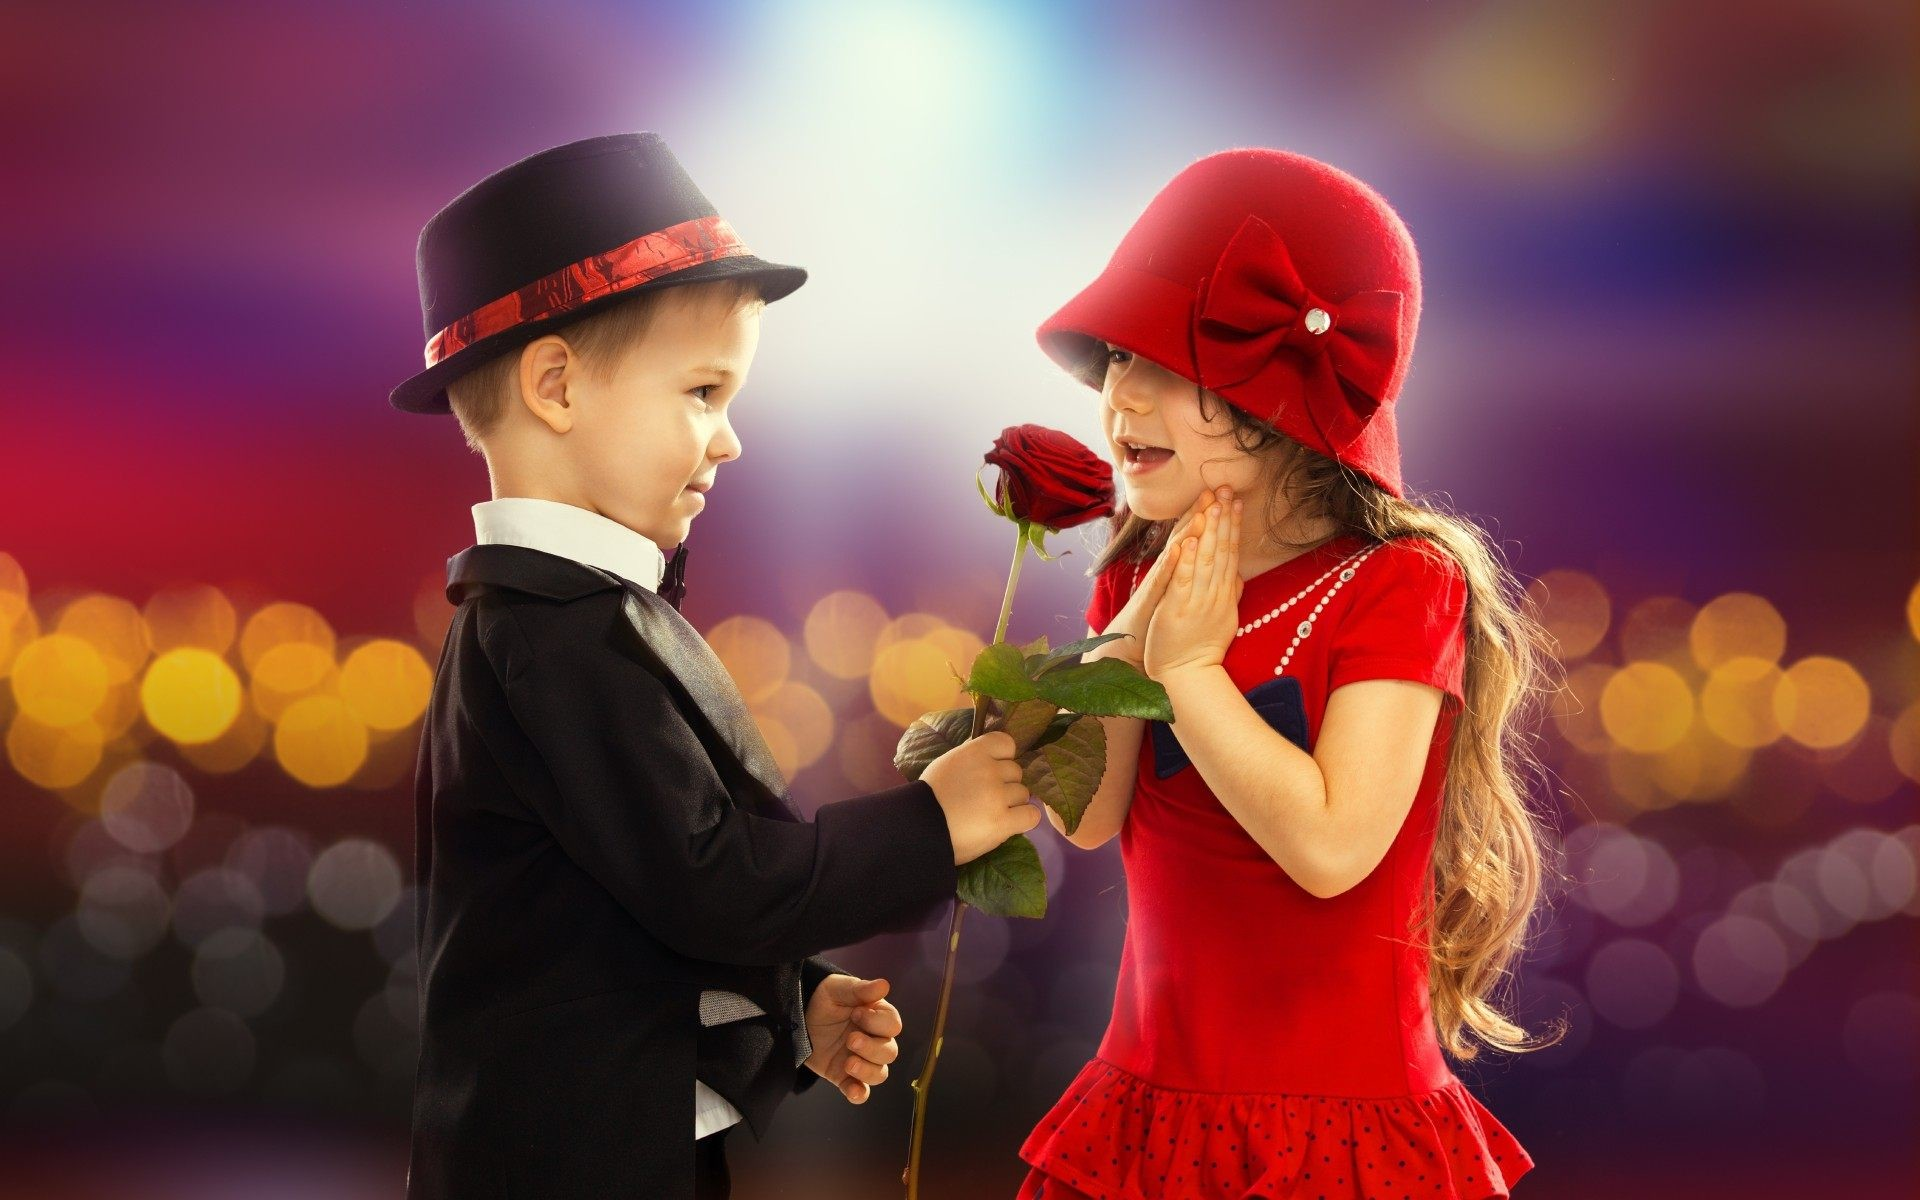 Love Romantic Boys And Girls Wallpapers And Pictures - Boy Proposing A Girl With Red Rose - HD Wallpaper